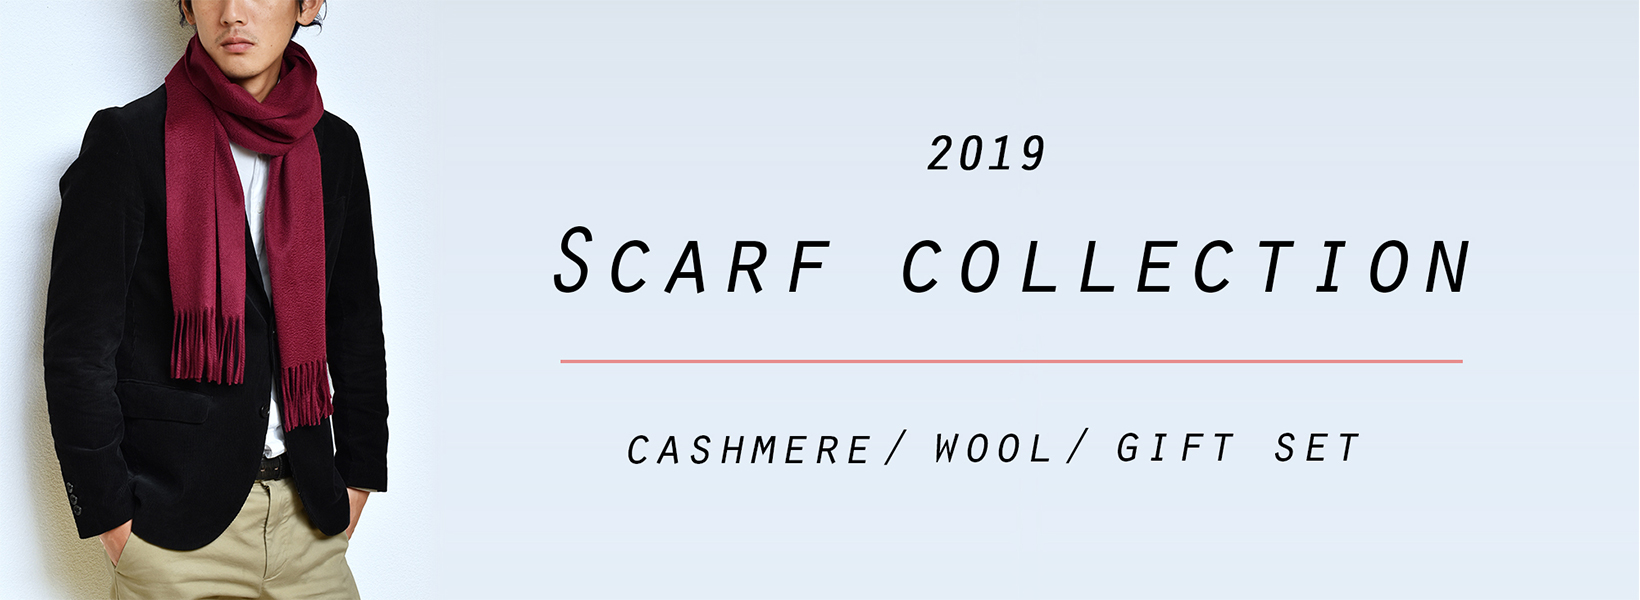 scarf_collection.jpg